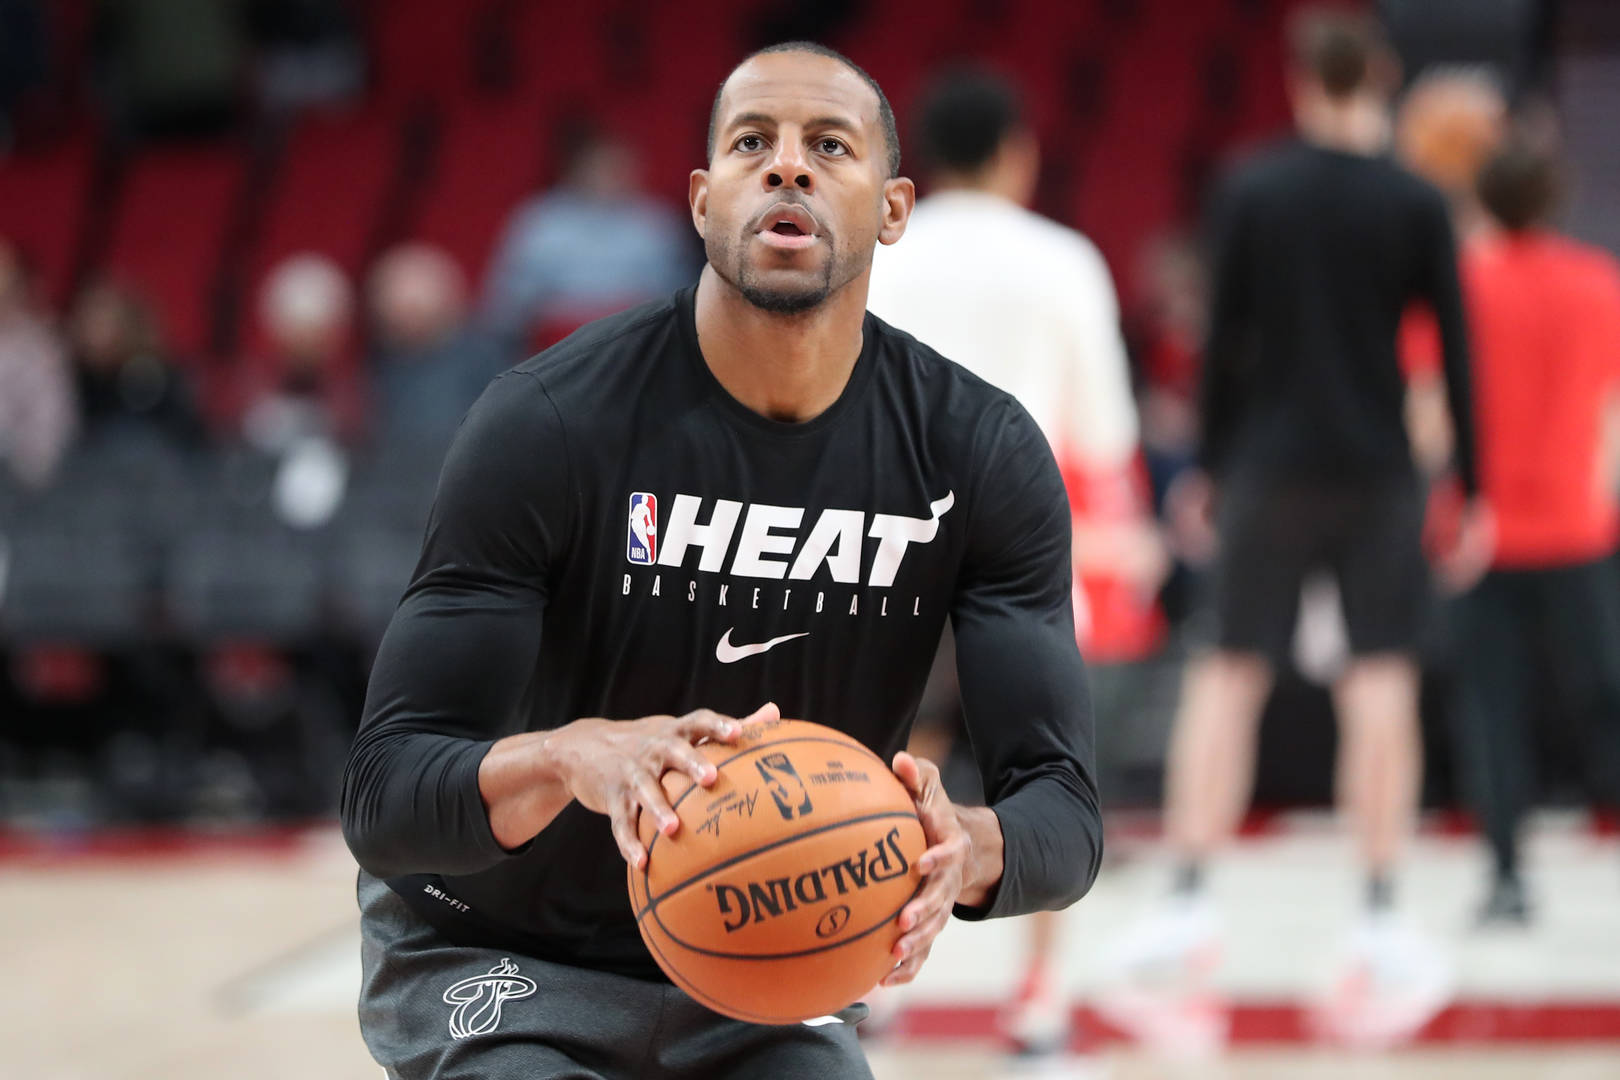 Andre Iguodala Claims Grizzlies Offered To Let Him Sit Out